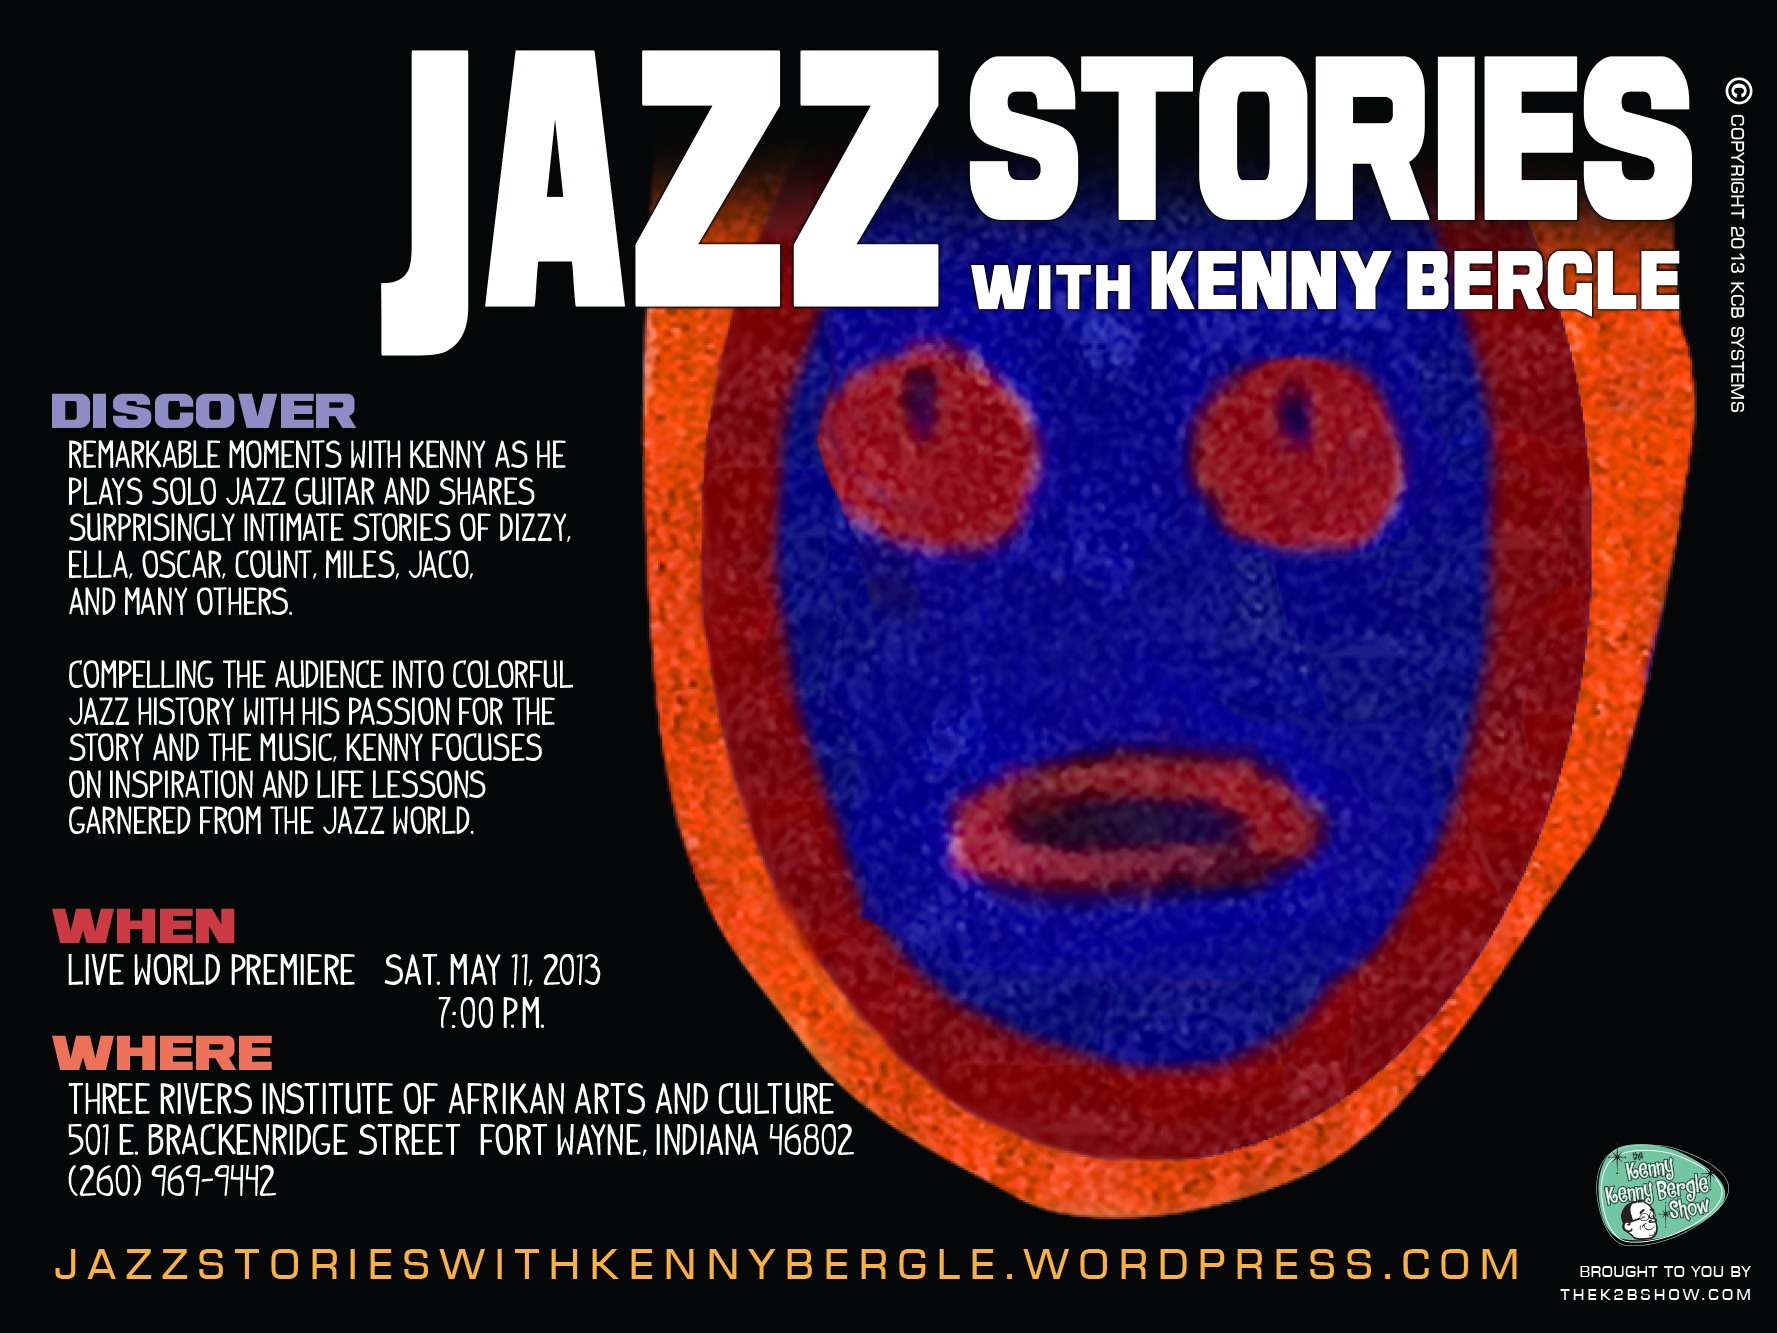 Final Jazz Stories with Kenny Bergle Web graphic March 2013